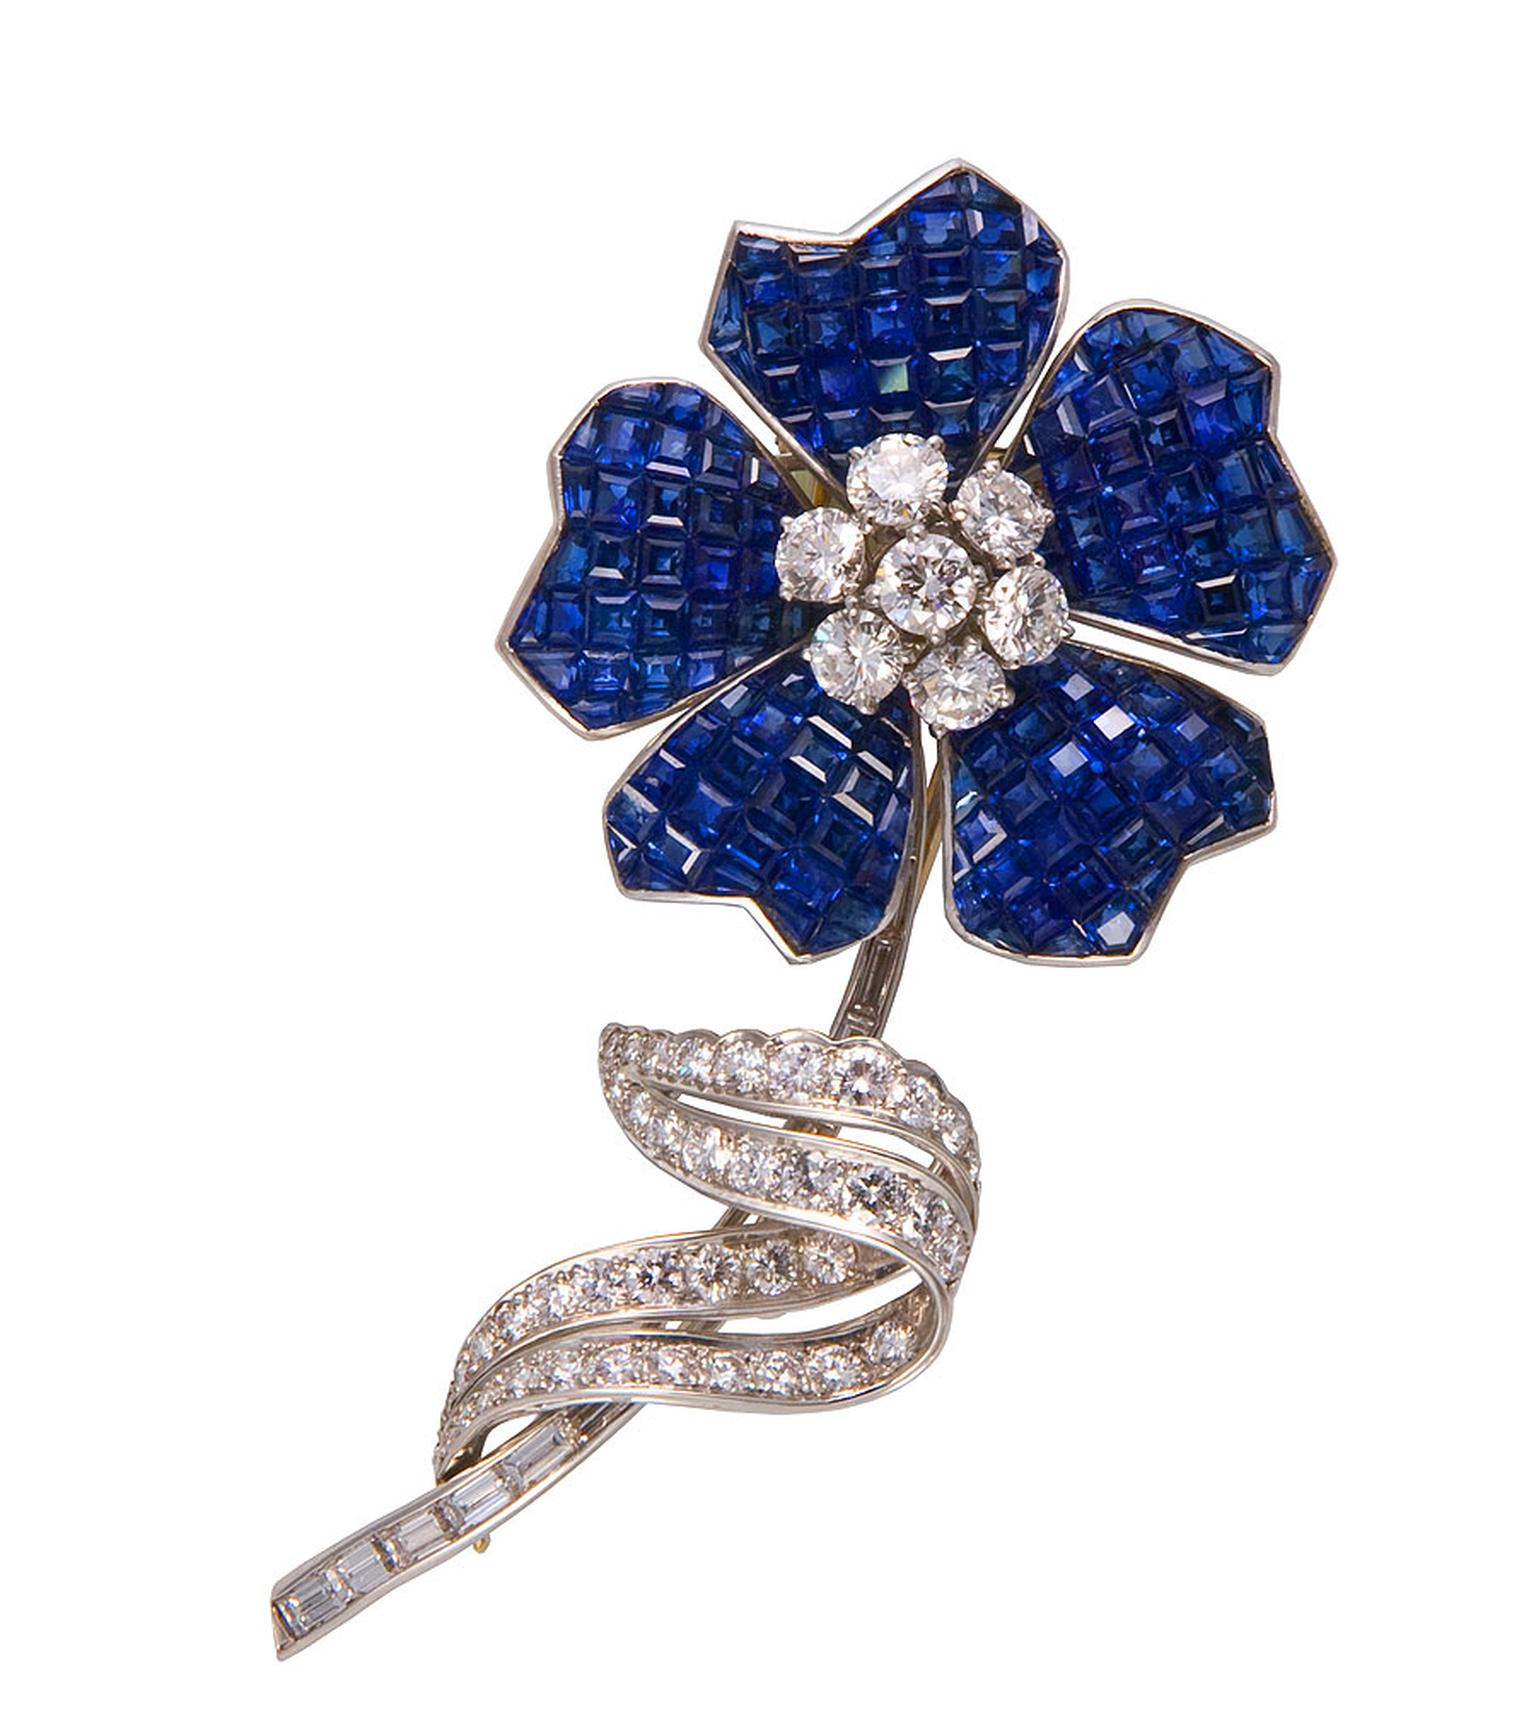 MPL-2013-Veronique-Bamps-VCA-Fleur-Brooch-1937.jpg